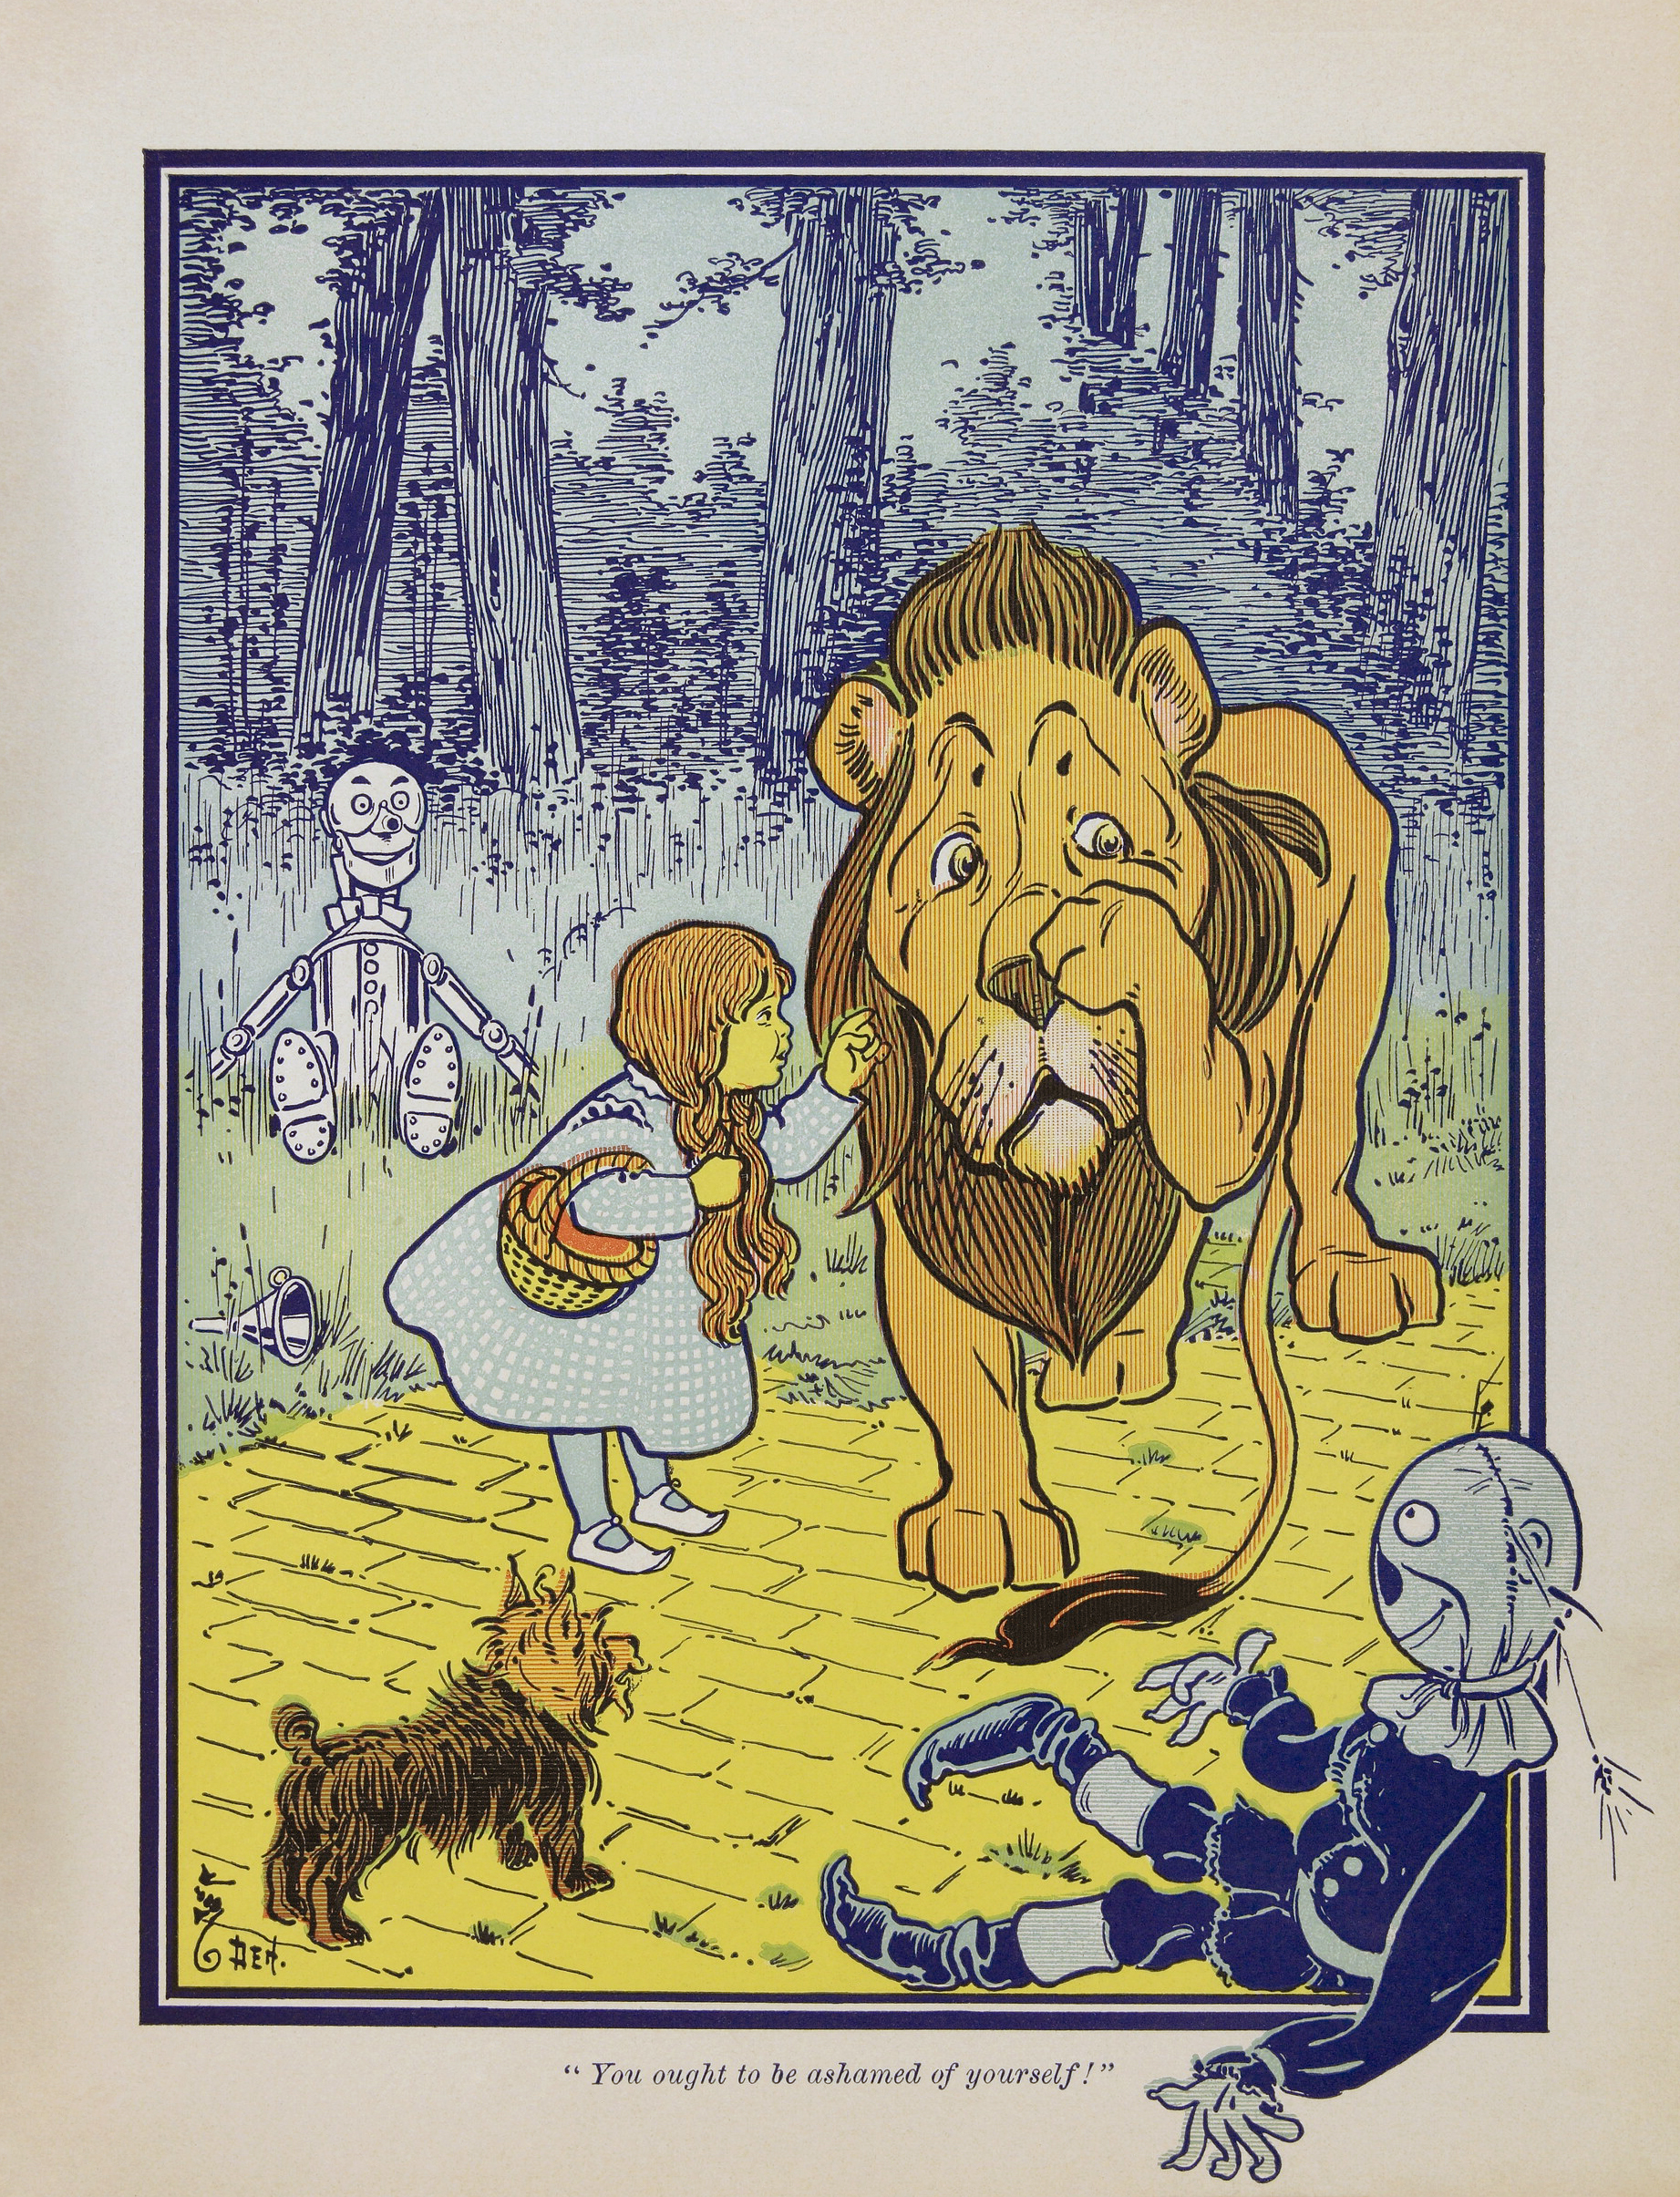 the wonderful wizard of oz l frank baum the essay contains a  dorothy meets the cowardly lion from the wonderful wizard of oz first edition